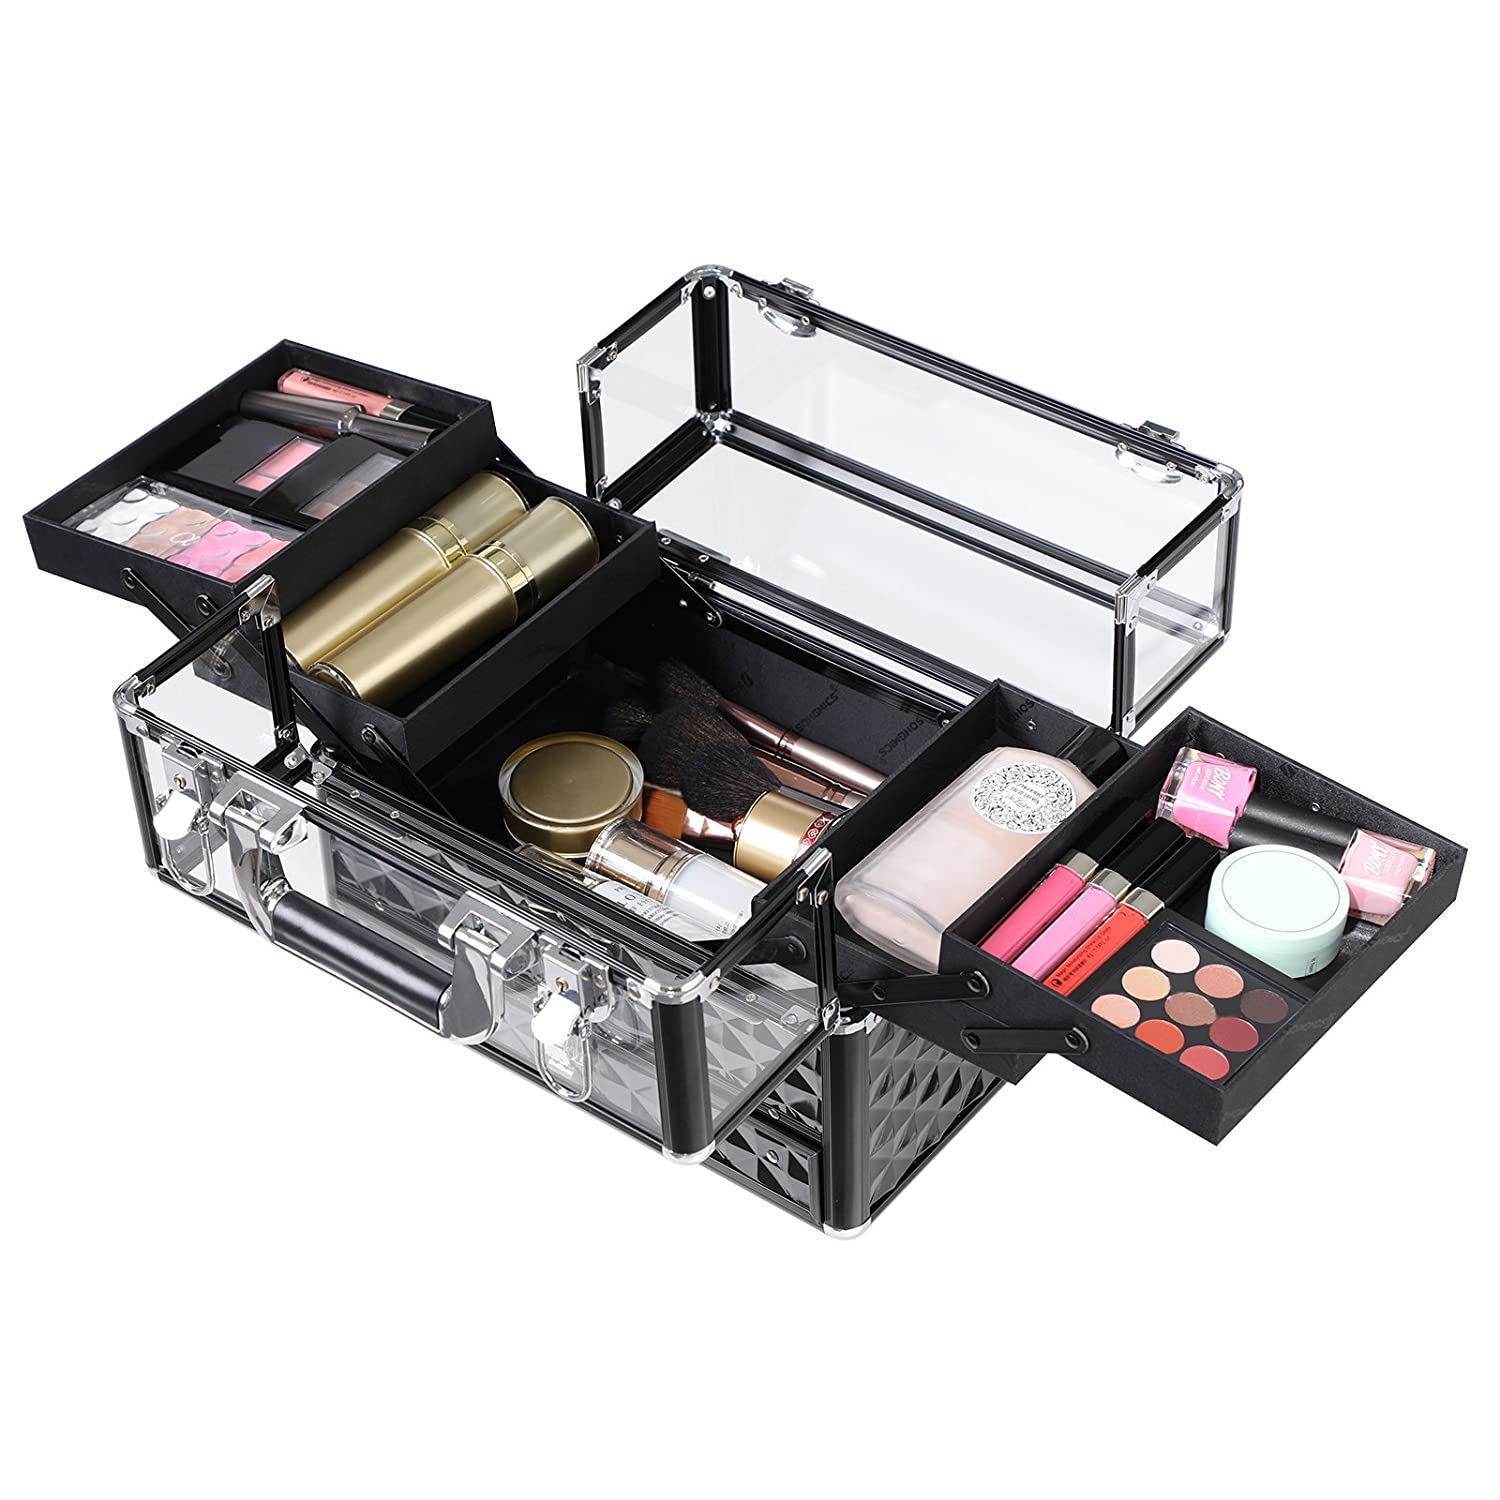 Songmics Deluxe Makeup Case Beauty Cosmetic Vanity Organizer For Professional